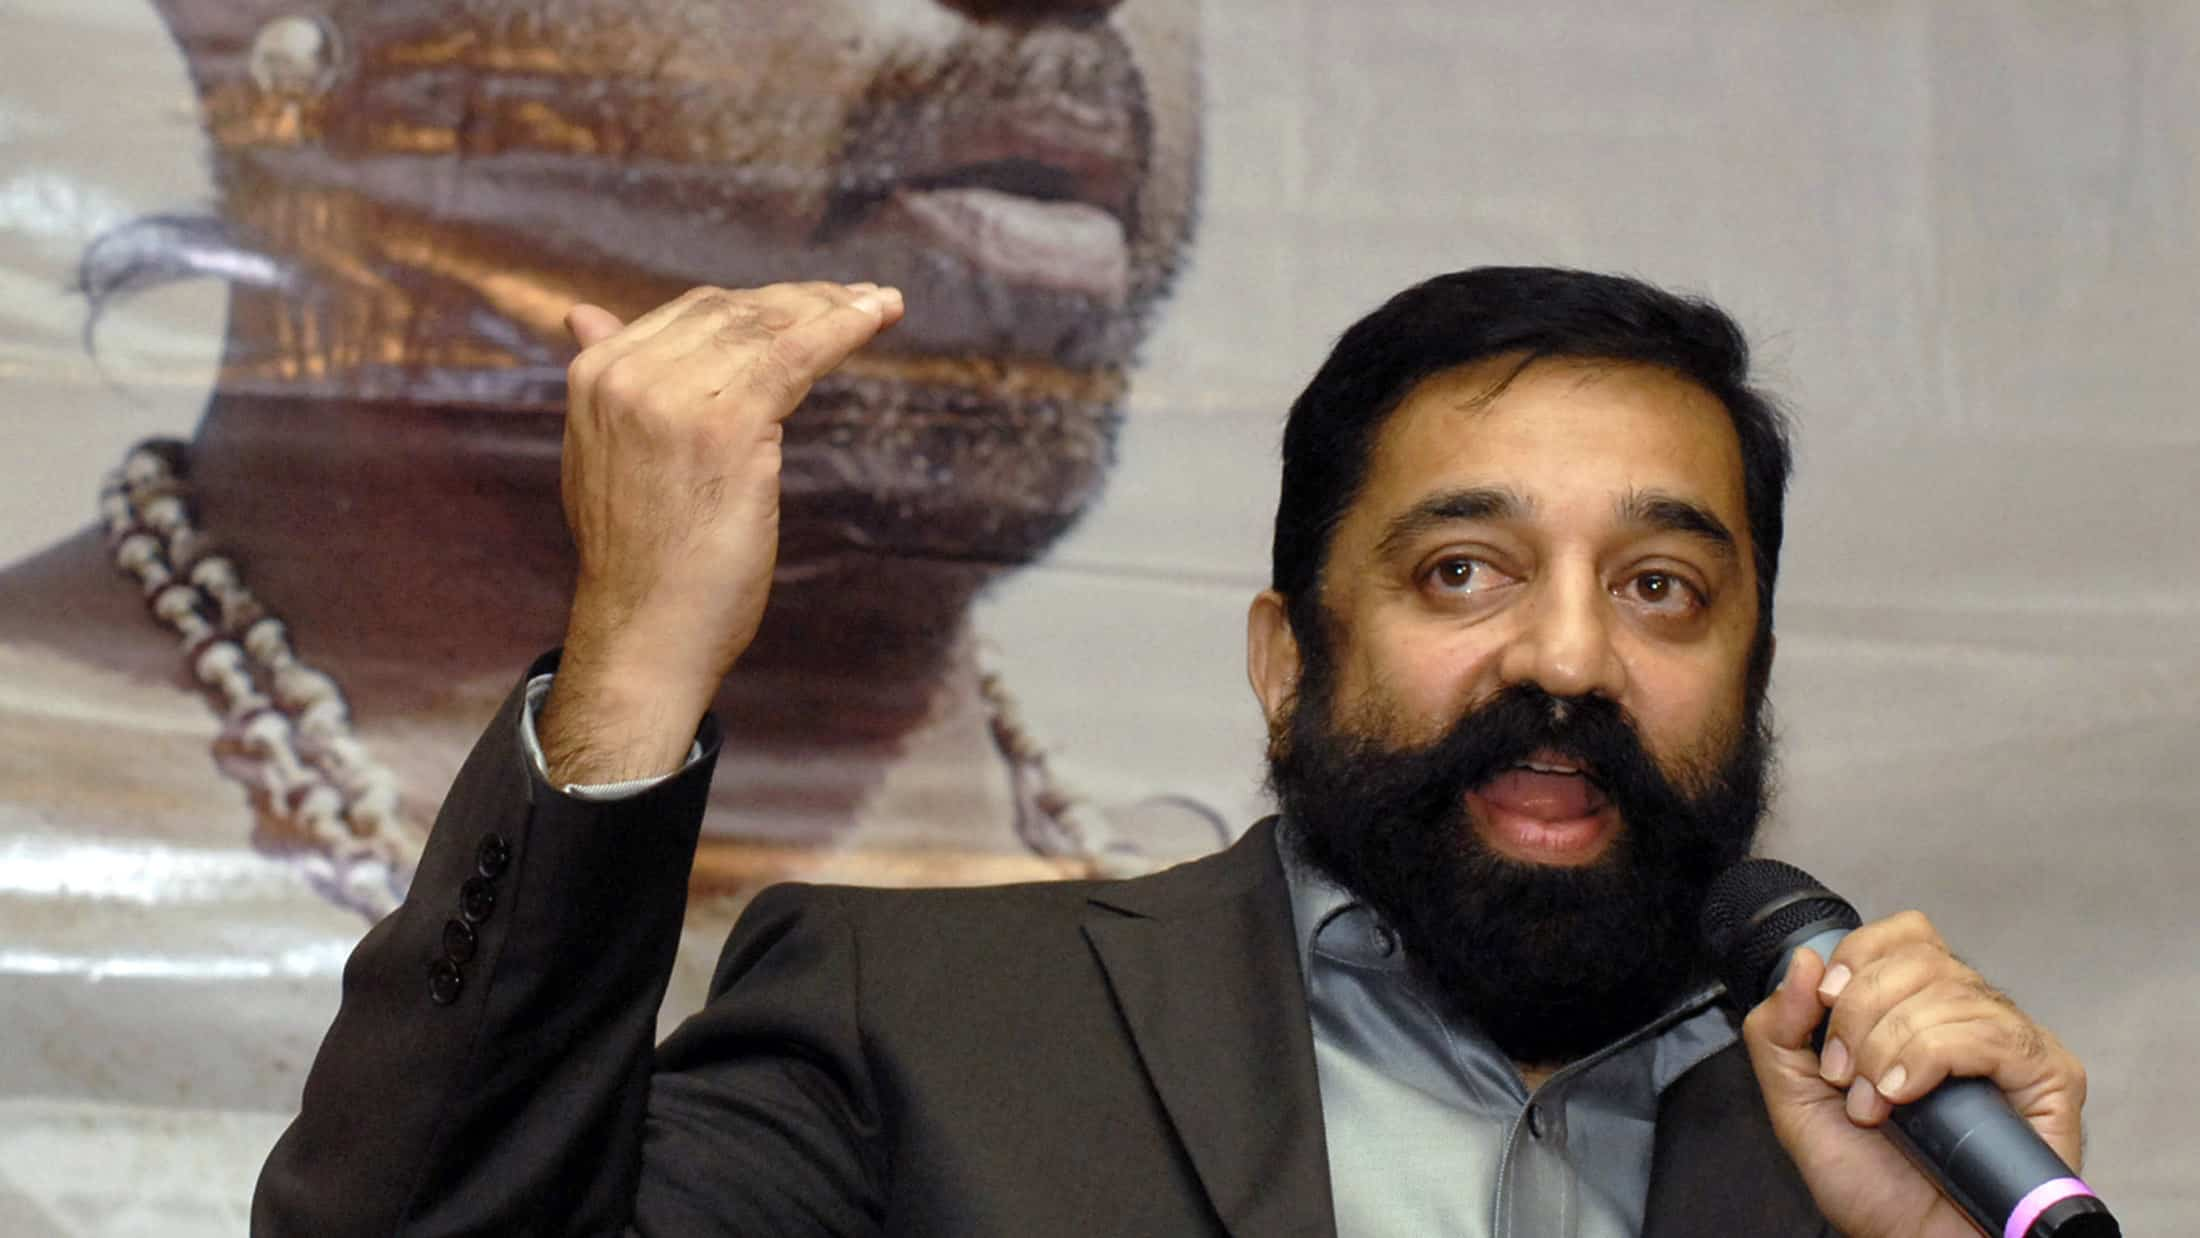 Case filed against Kamal Haasan for hurting religious sentiment